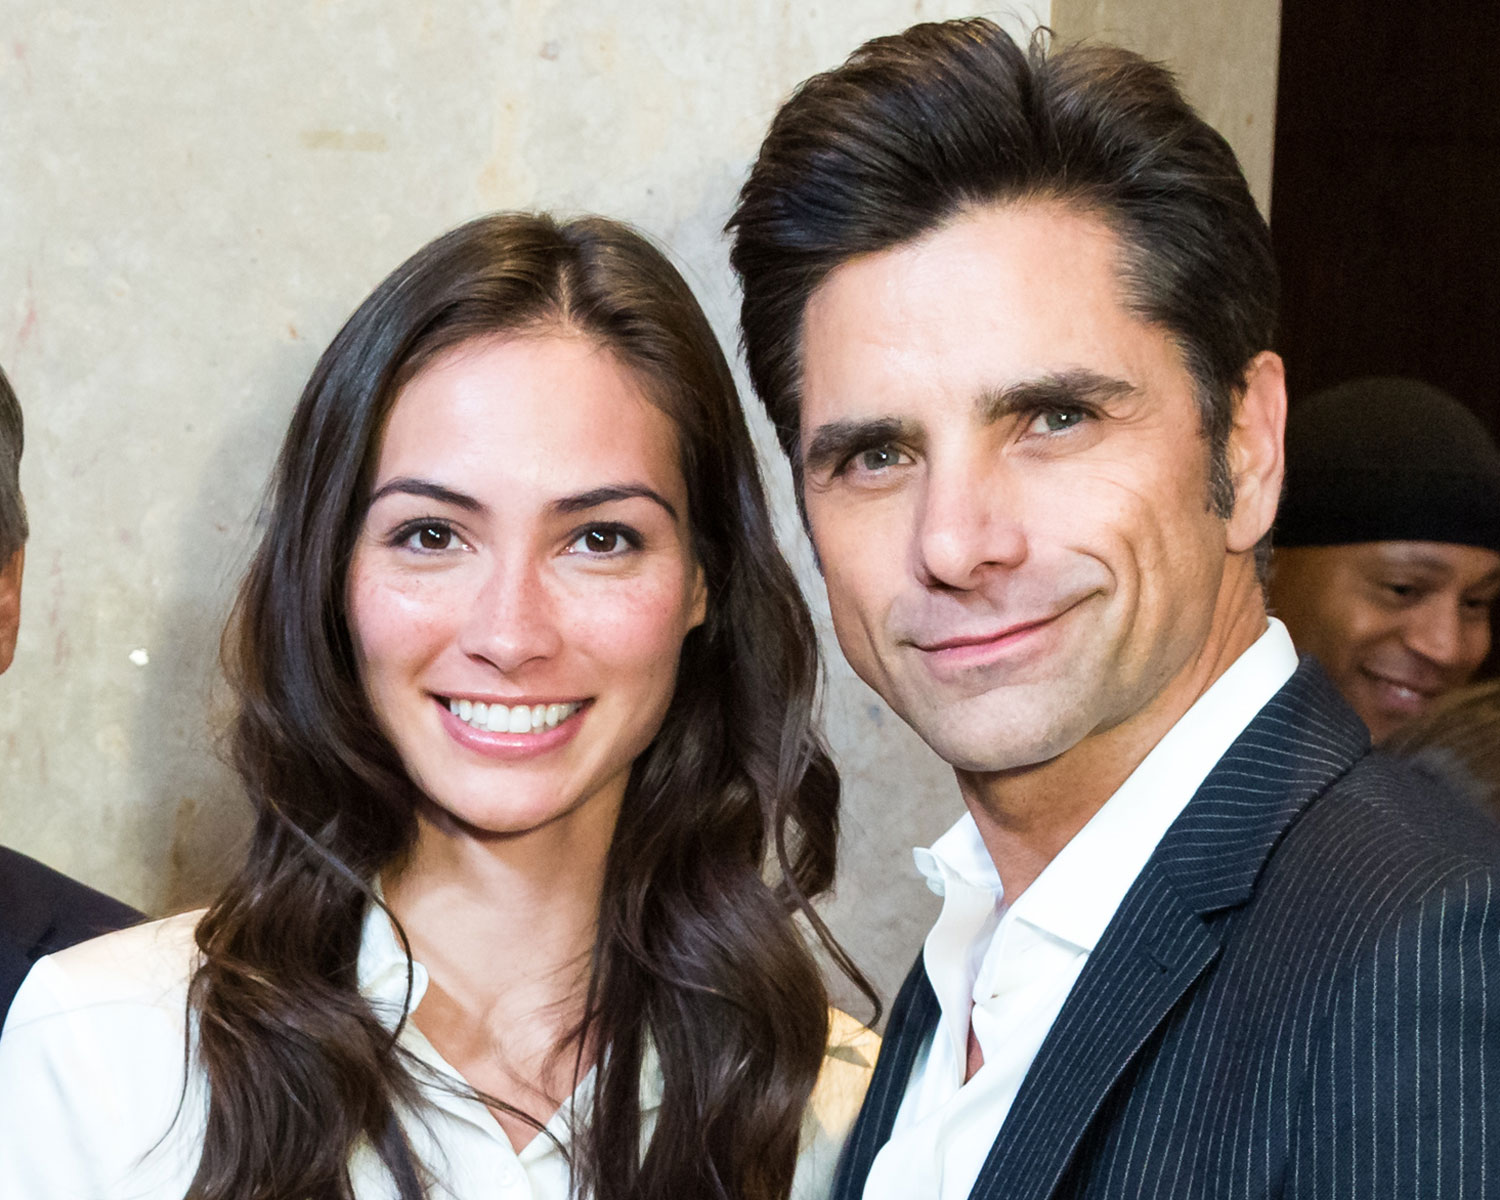 John Stamos Is Engaged: Here's How He Proposed in Disneyland